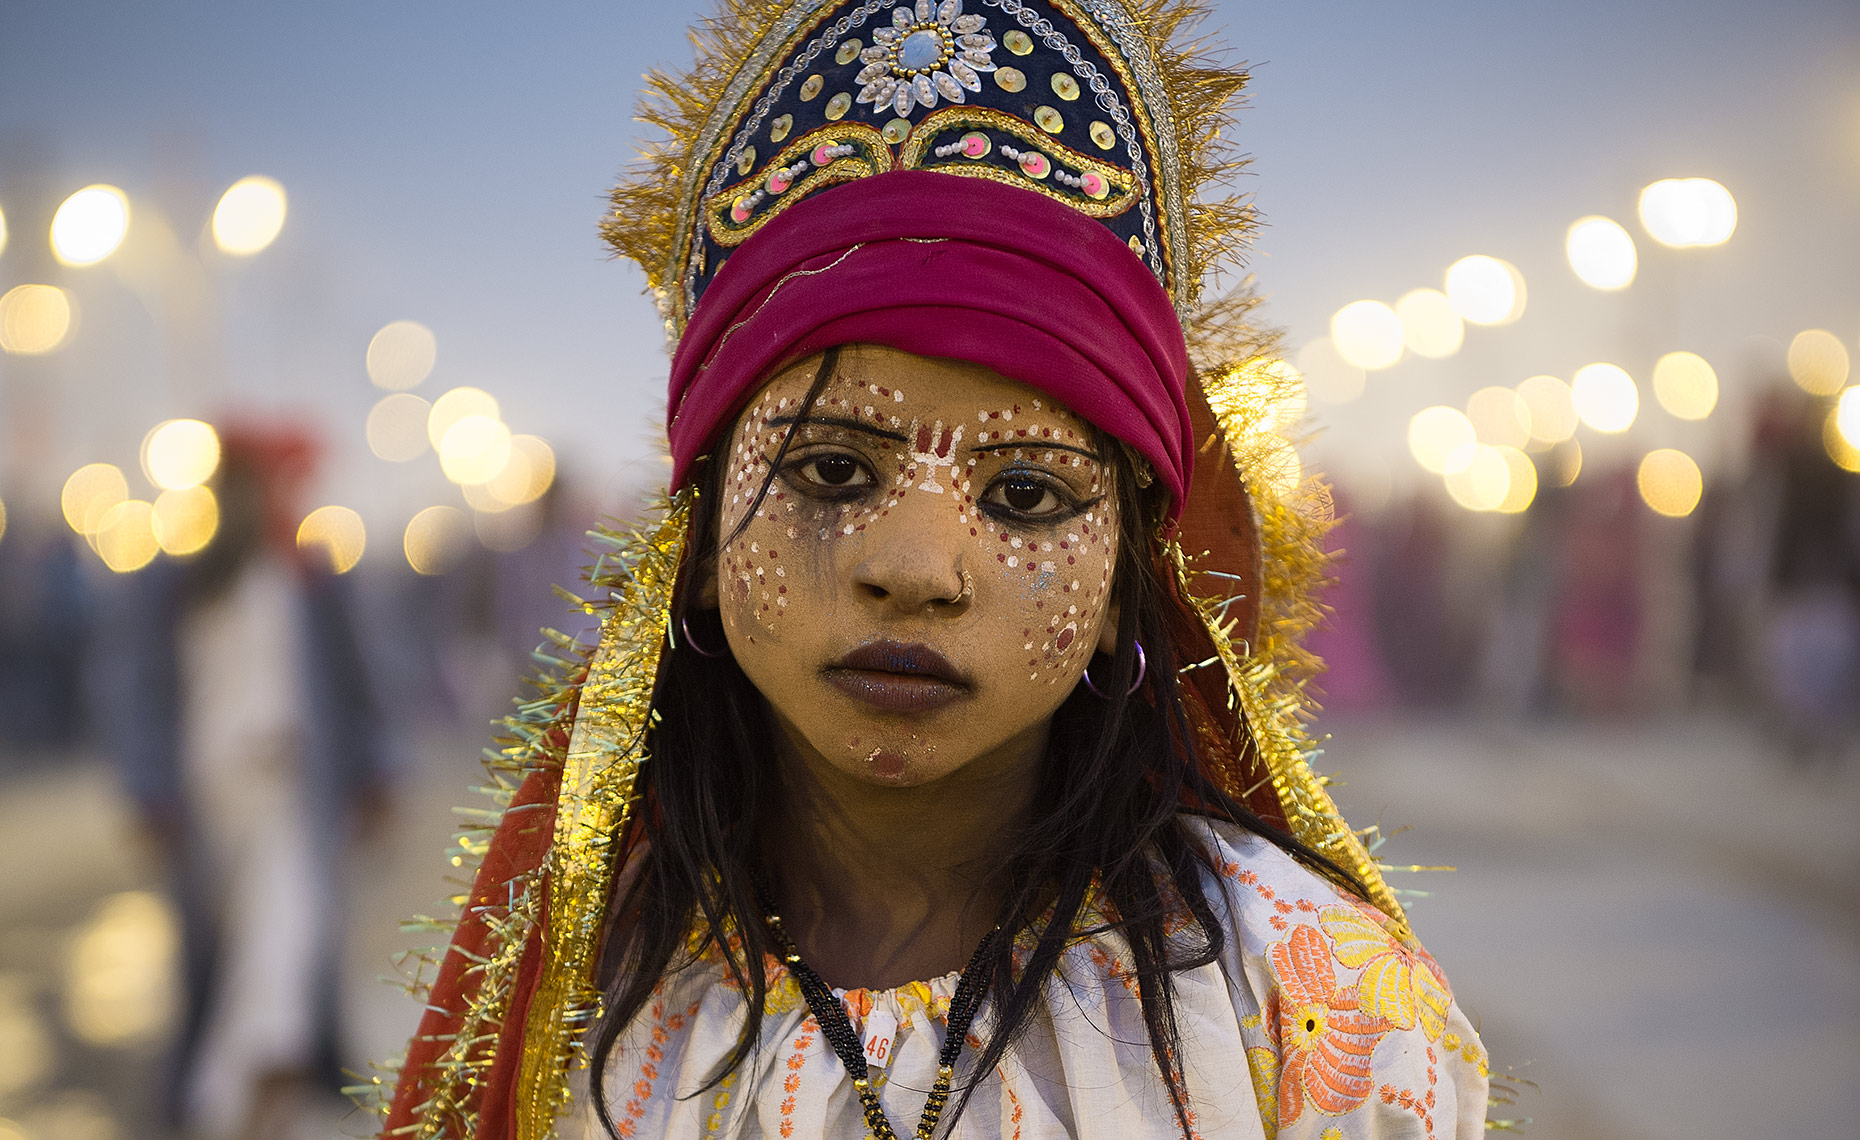 GIrl In Costume, Kumbh Mela, Allahadad, India